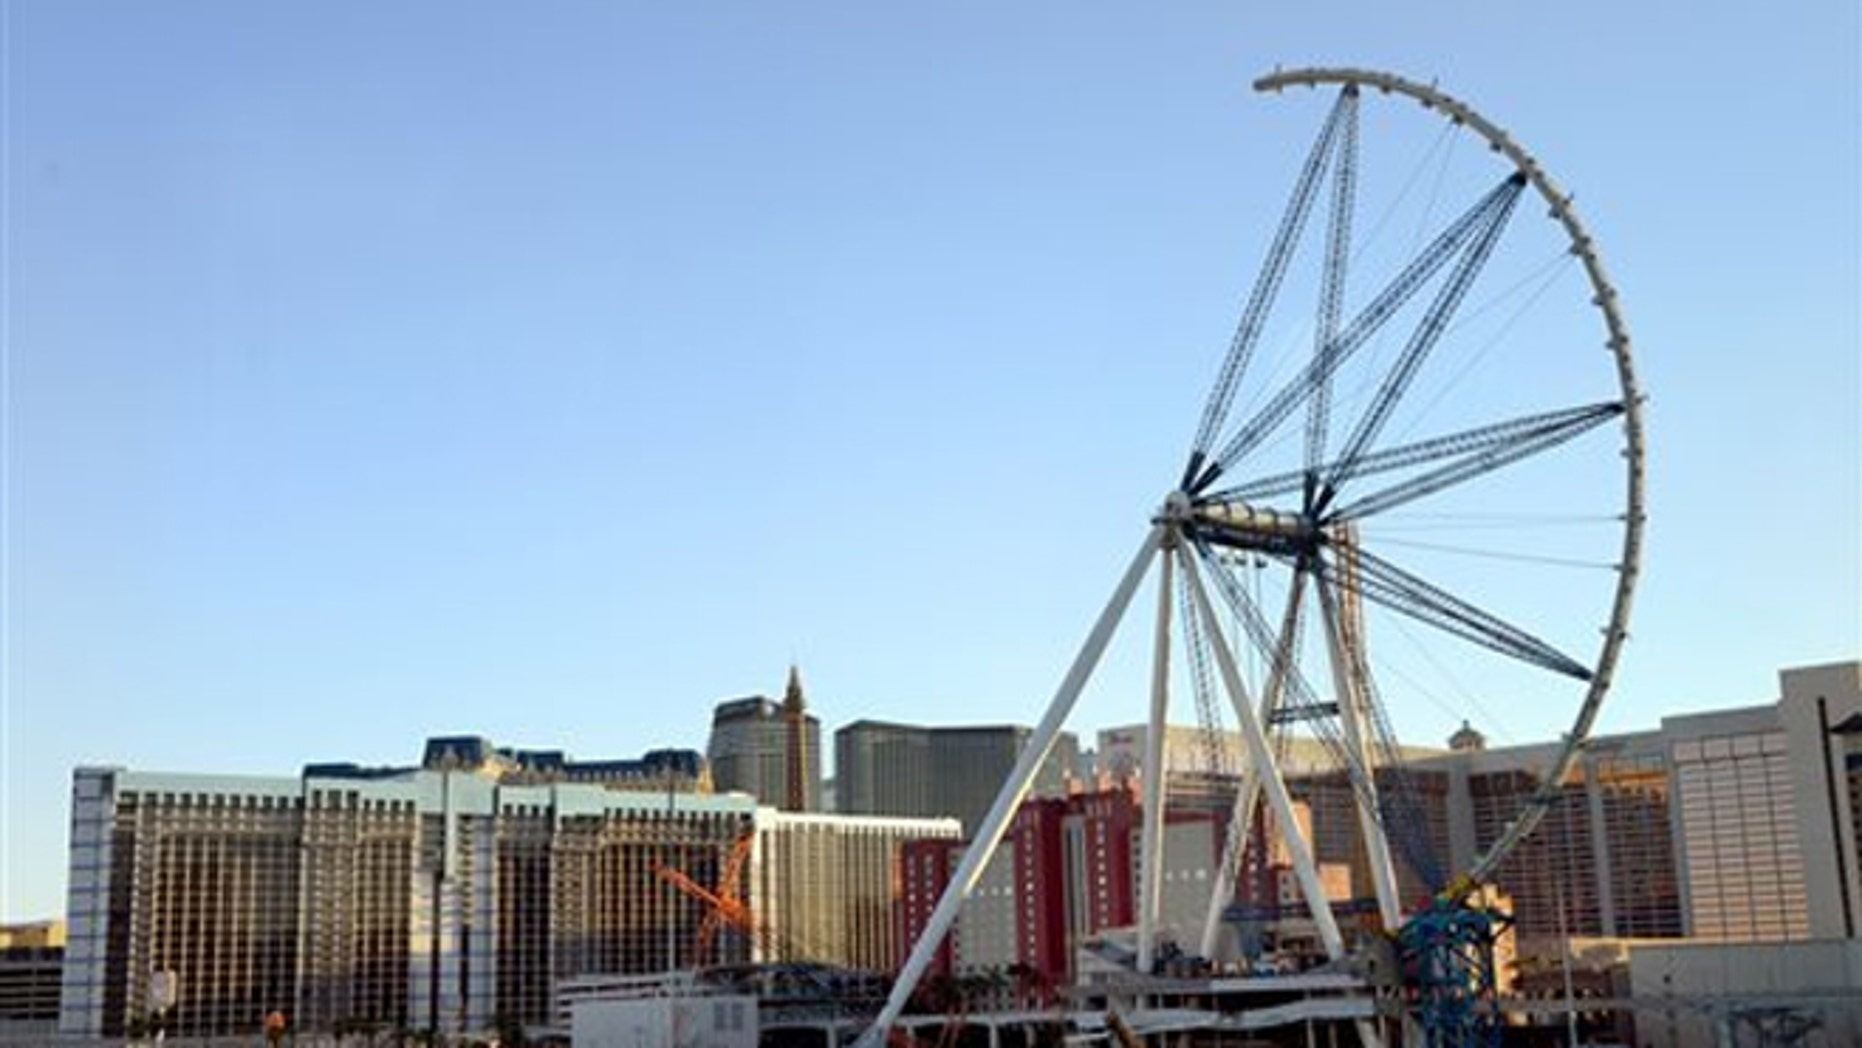 Aug. 14, 2013: The High Roller observation wheel is seen halfway completed in Las Vegas.